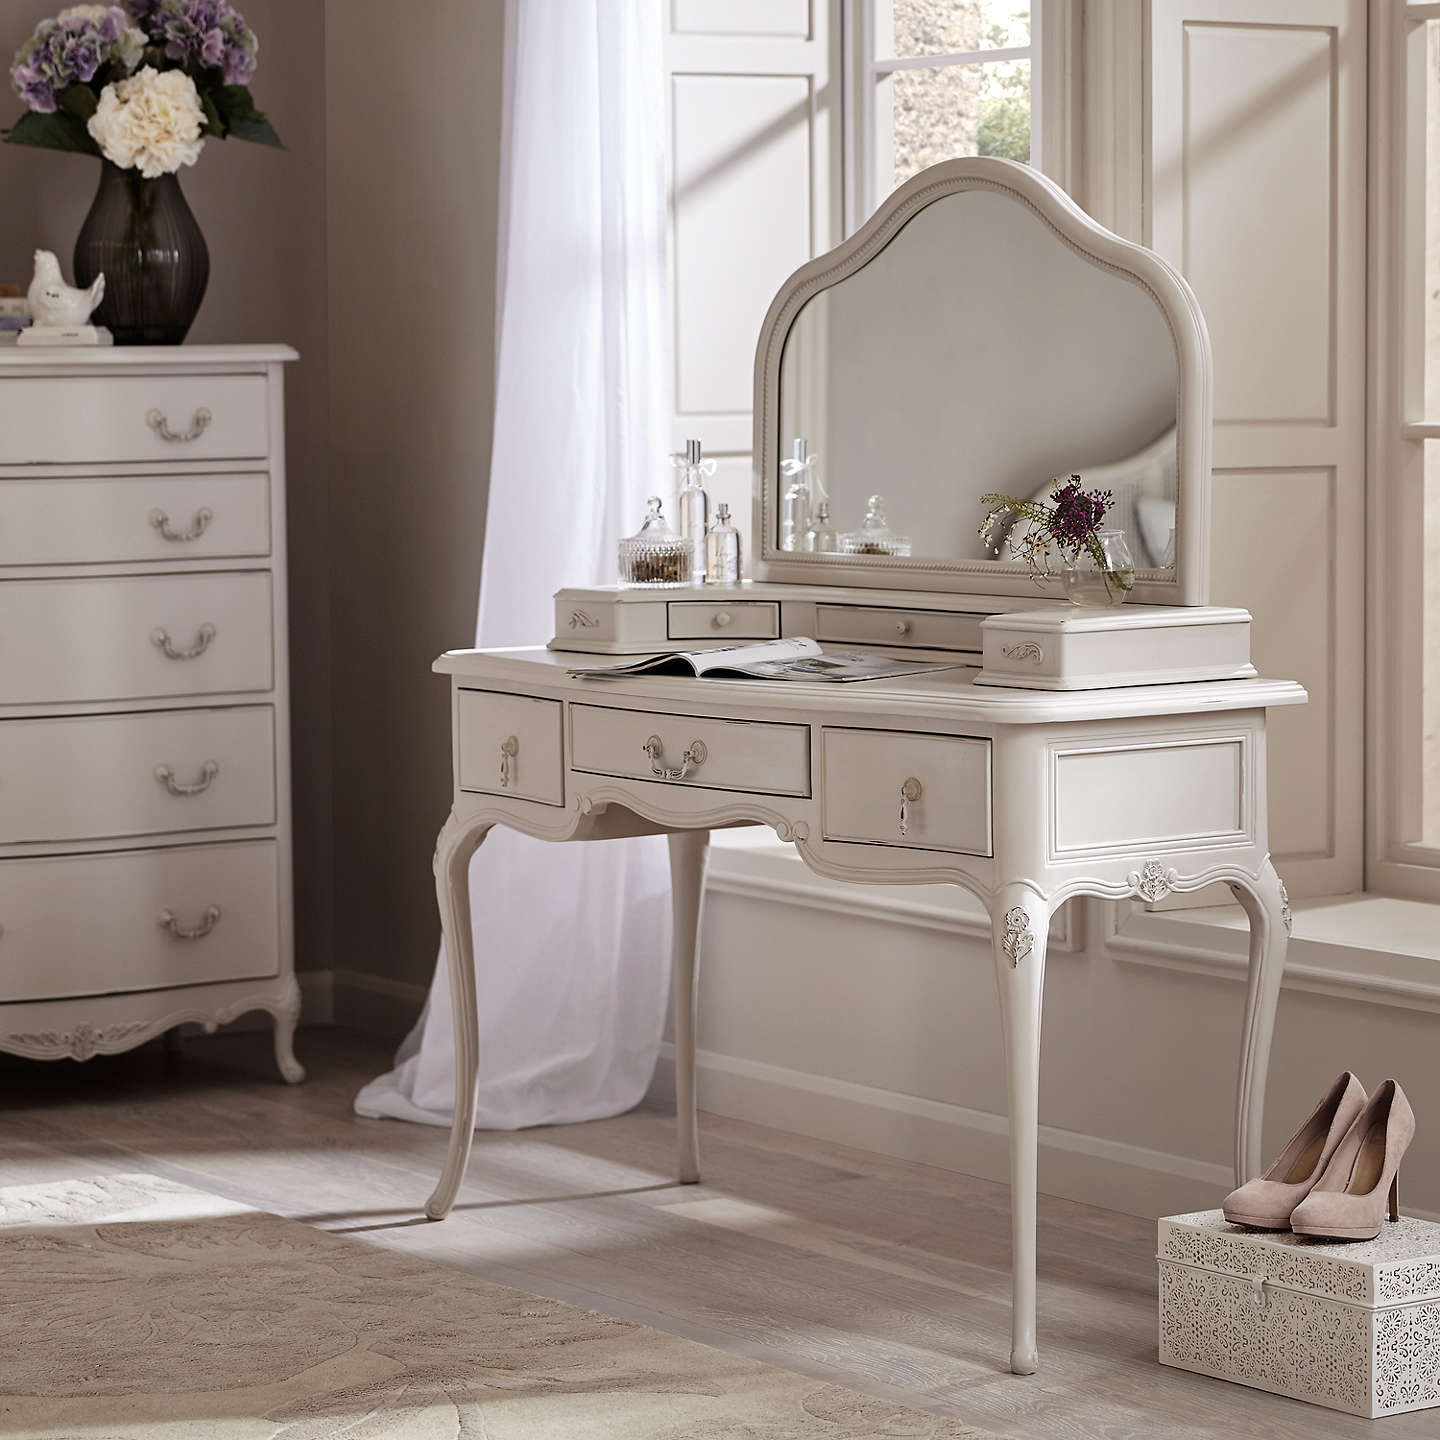 John lewis rose mist dressing table at john lewis for John lewis chinese furniture